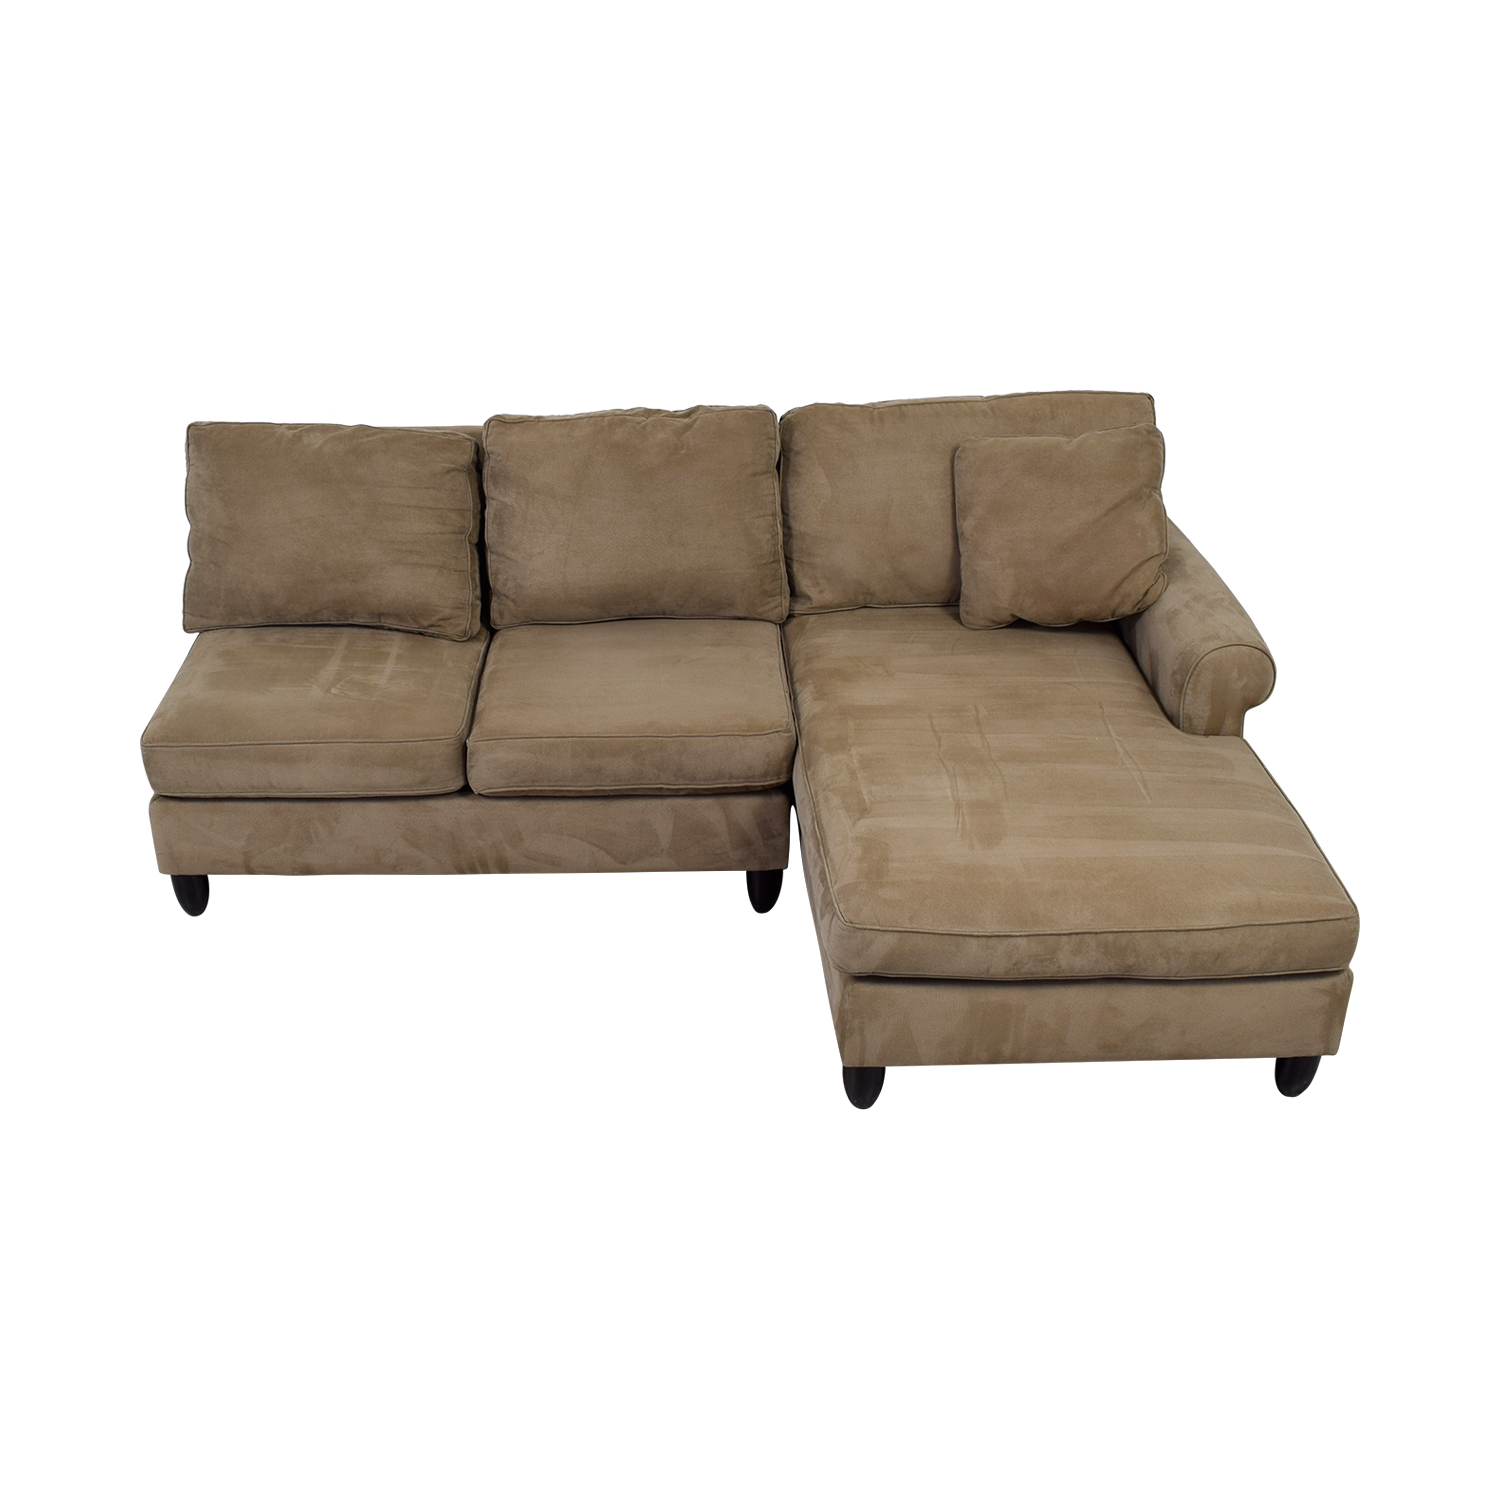 Fine 90 Off Havertys Havertys Tan Chaise Sectional Sofas Pdpeps Interior Chair Design Pdpepsorg